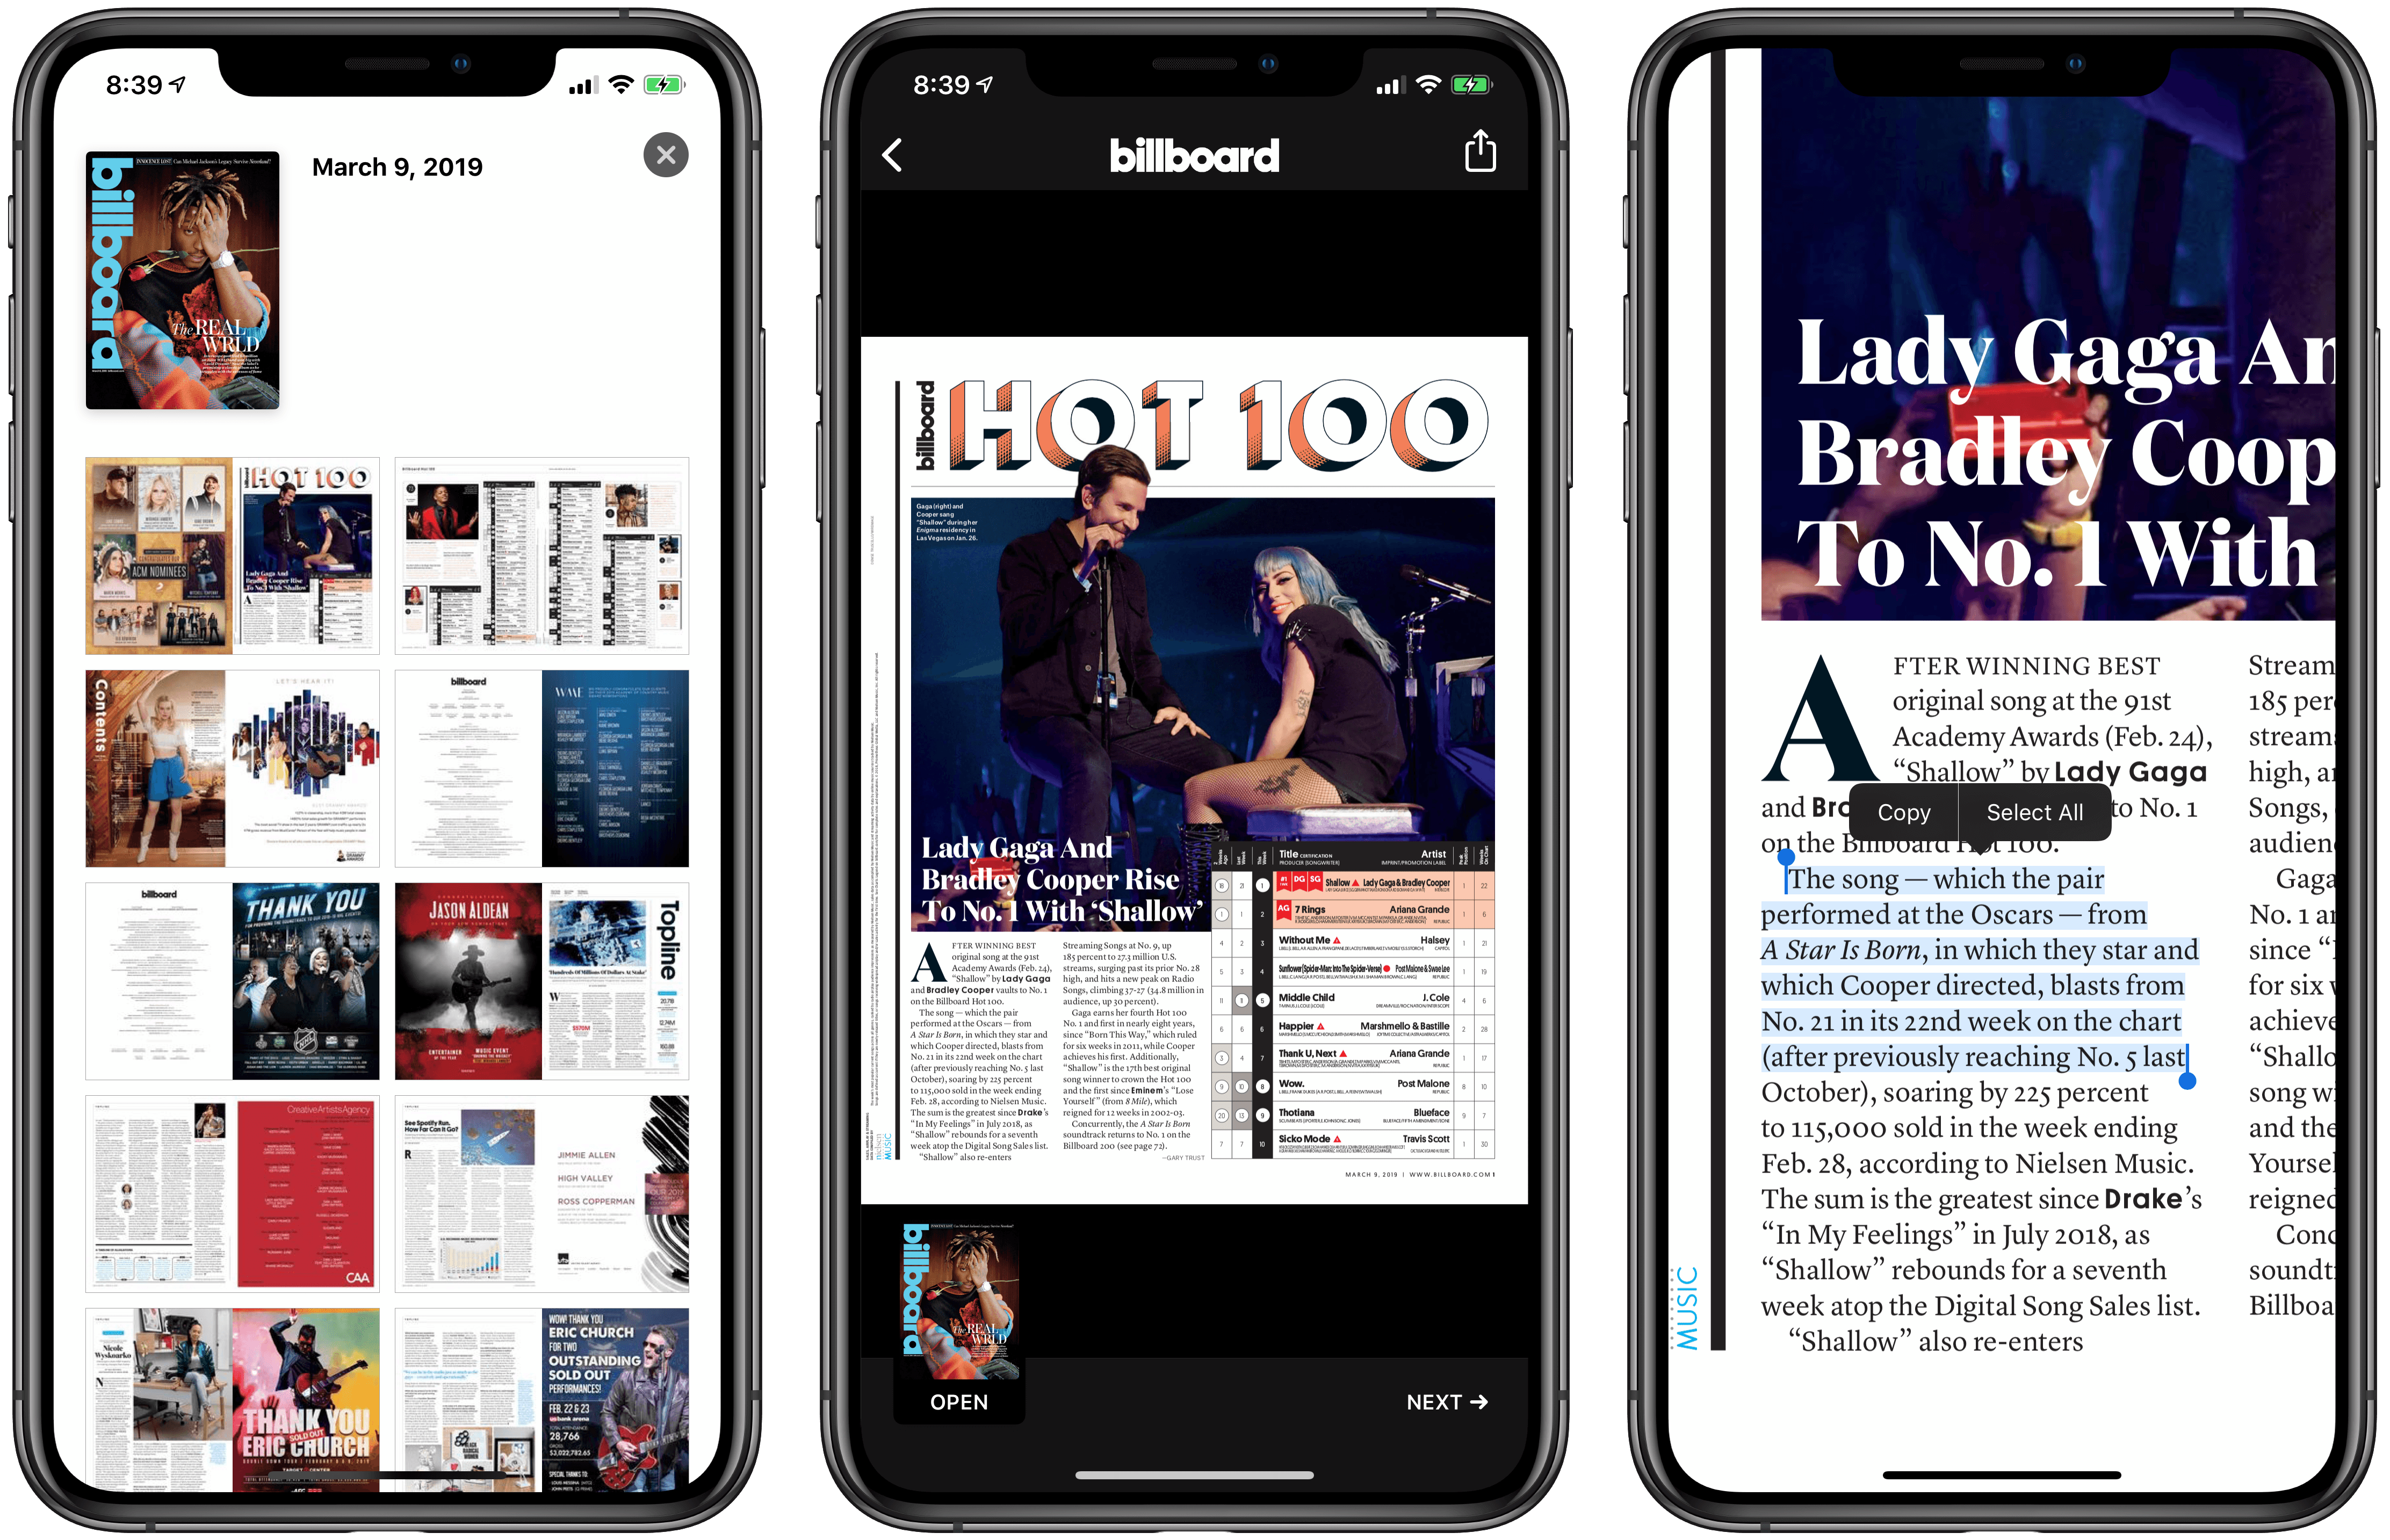 Billboard is one of the magazines that do not use the Apple News Format. Issues are made of pages that resemble a PDF document.